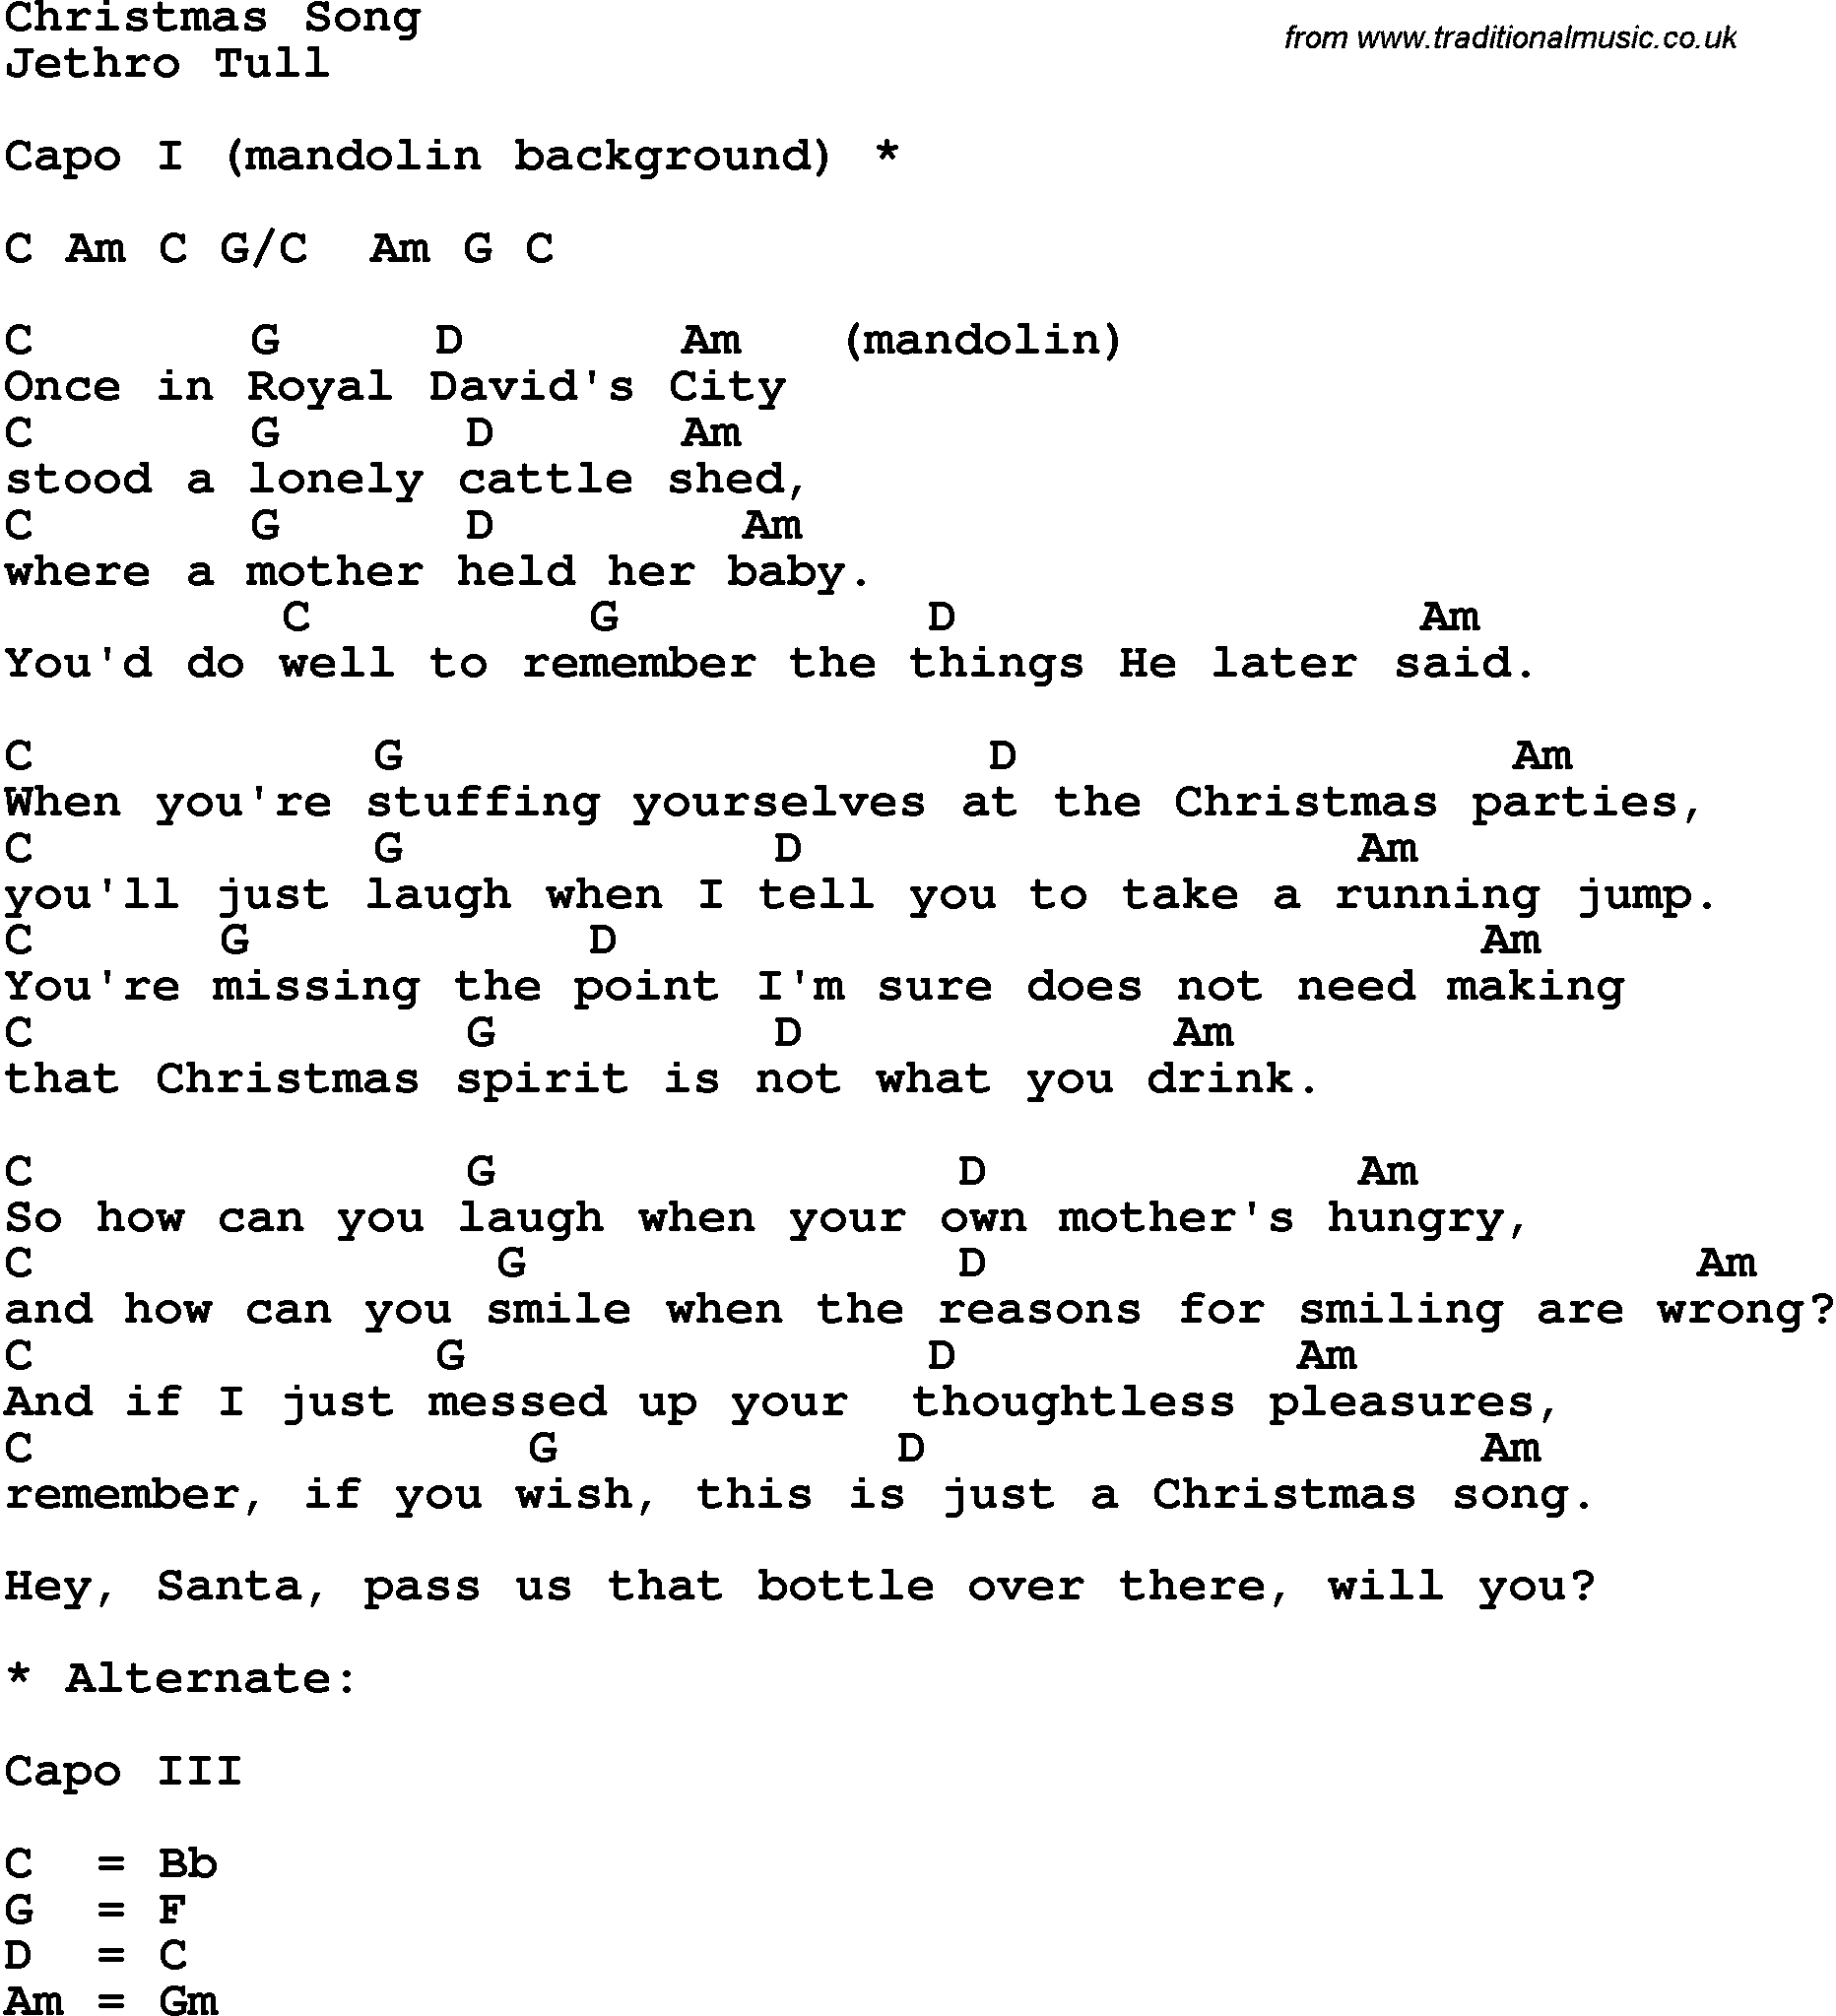 Song lyrics with guitar chords for christmas song jethro tull song lyrics with guitar chords for christmas song jethro tull hexwebz Choice Image